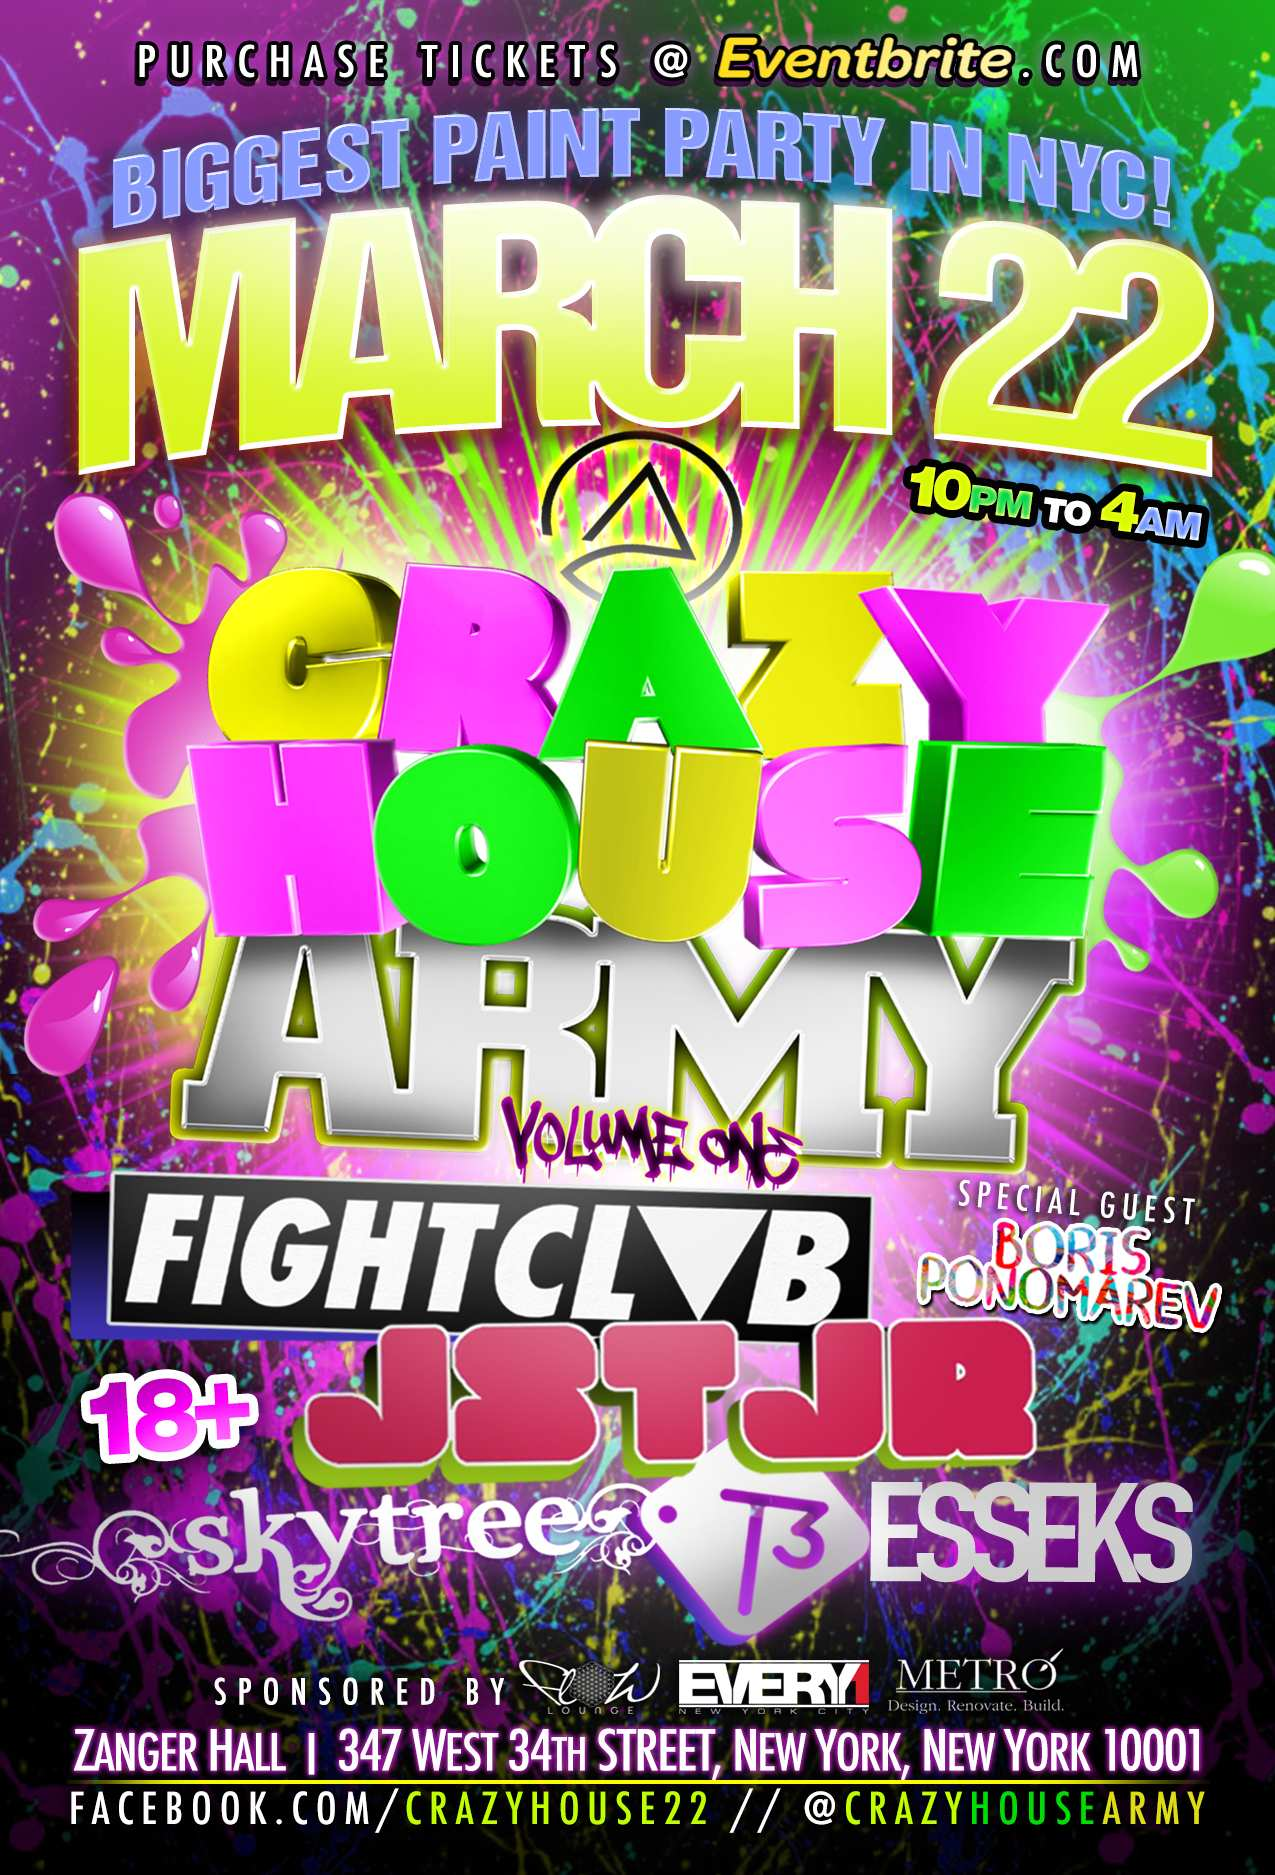 CRAZY HOUSE ARMY MARCH 22 NEW YORK CITY